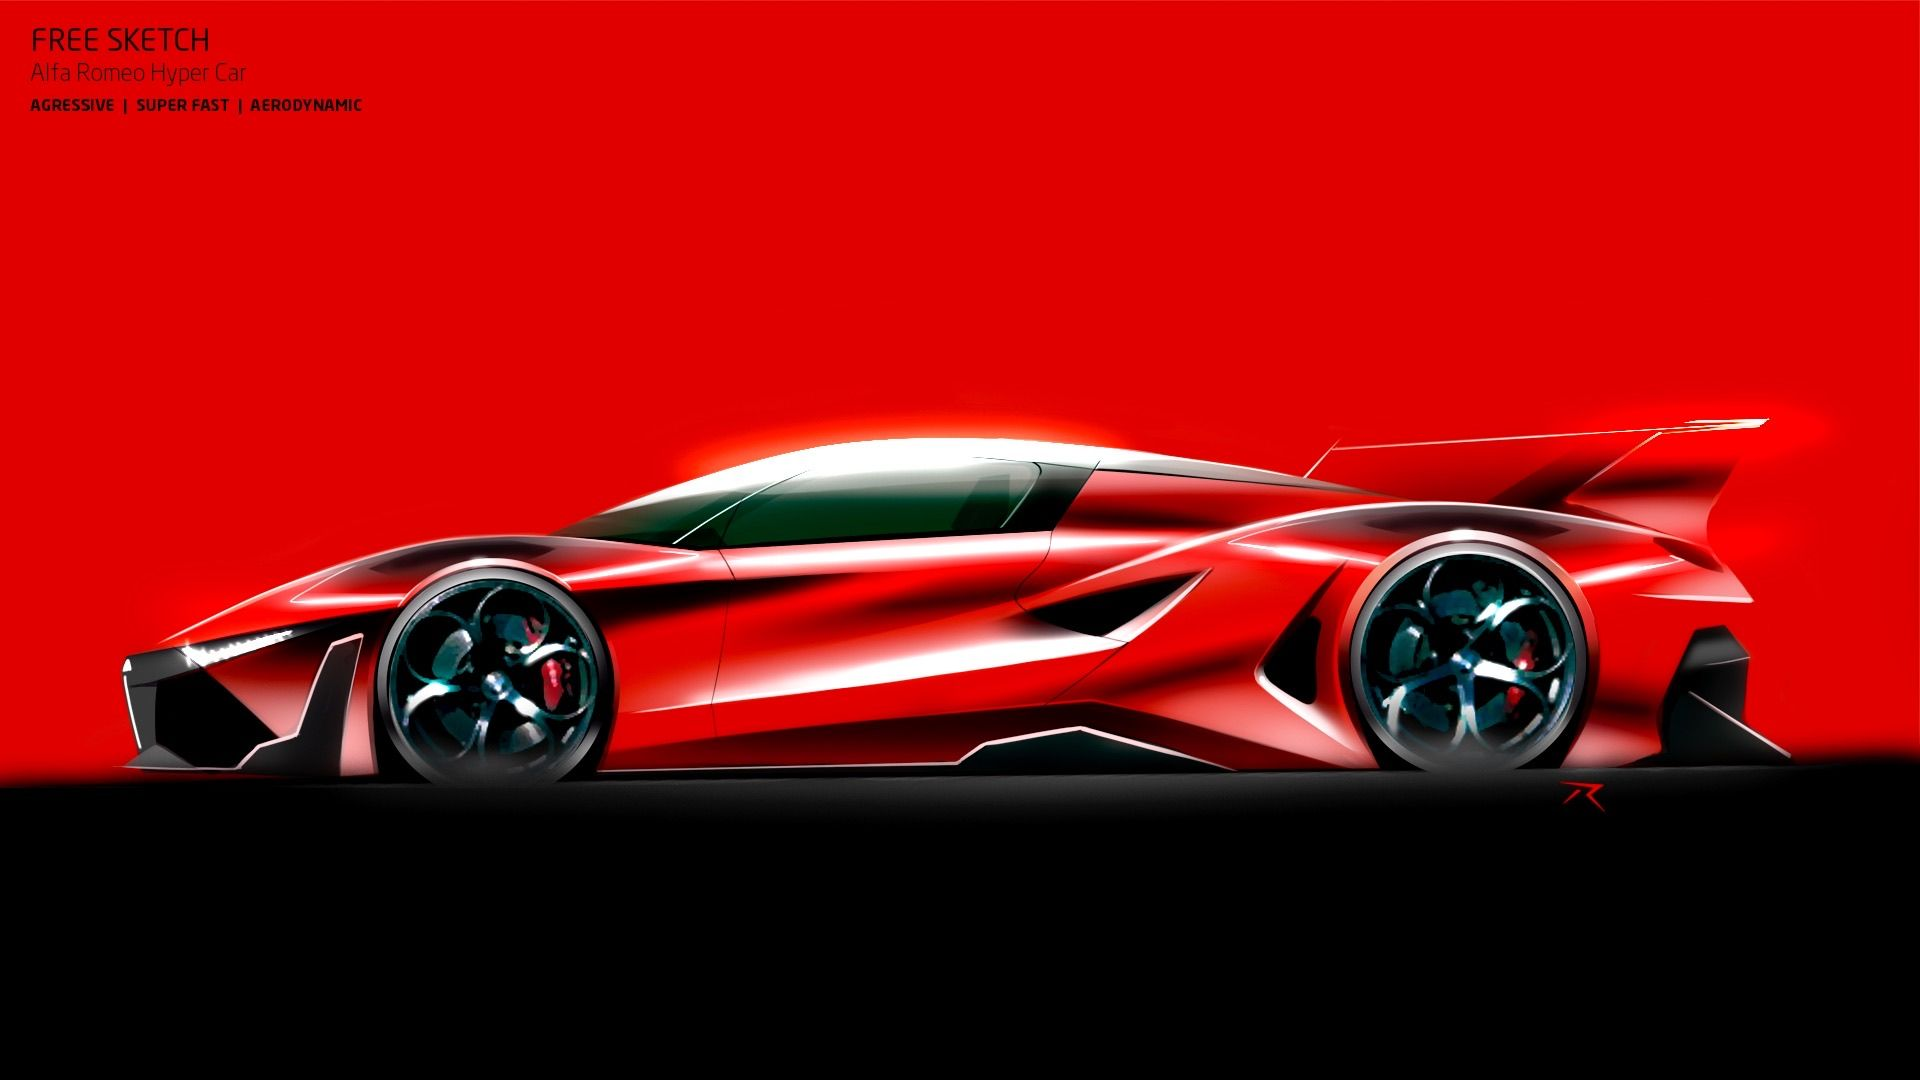 Alfa Romeo mid engine Hyper Car proposal by P Ruperto